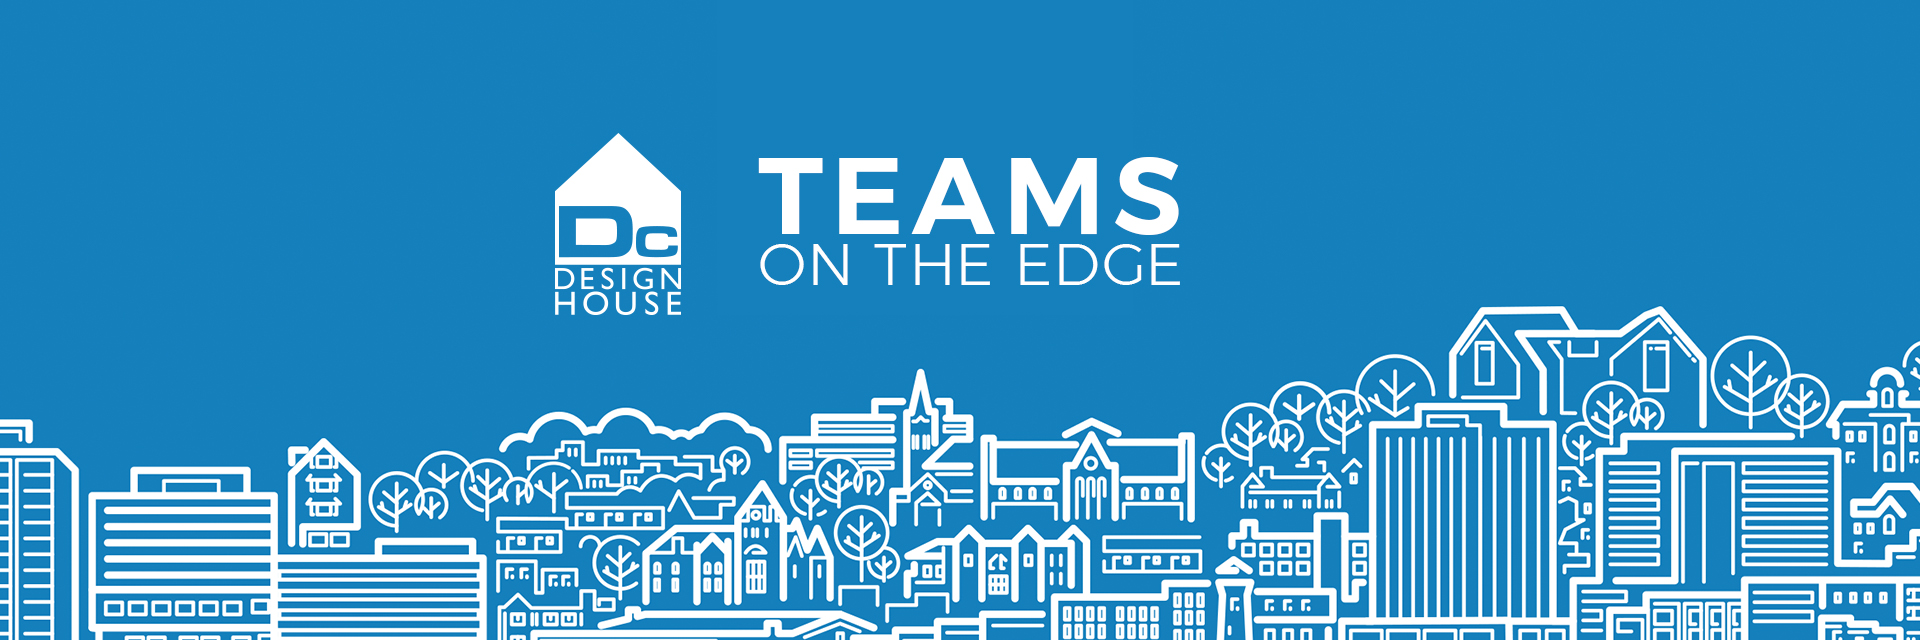 Dc Presents: Teams on the Edge, Podcast Episode 6: Katrina O'Keefe, Project Manager